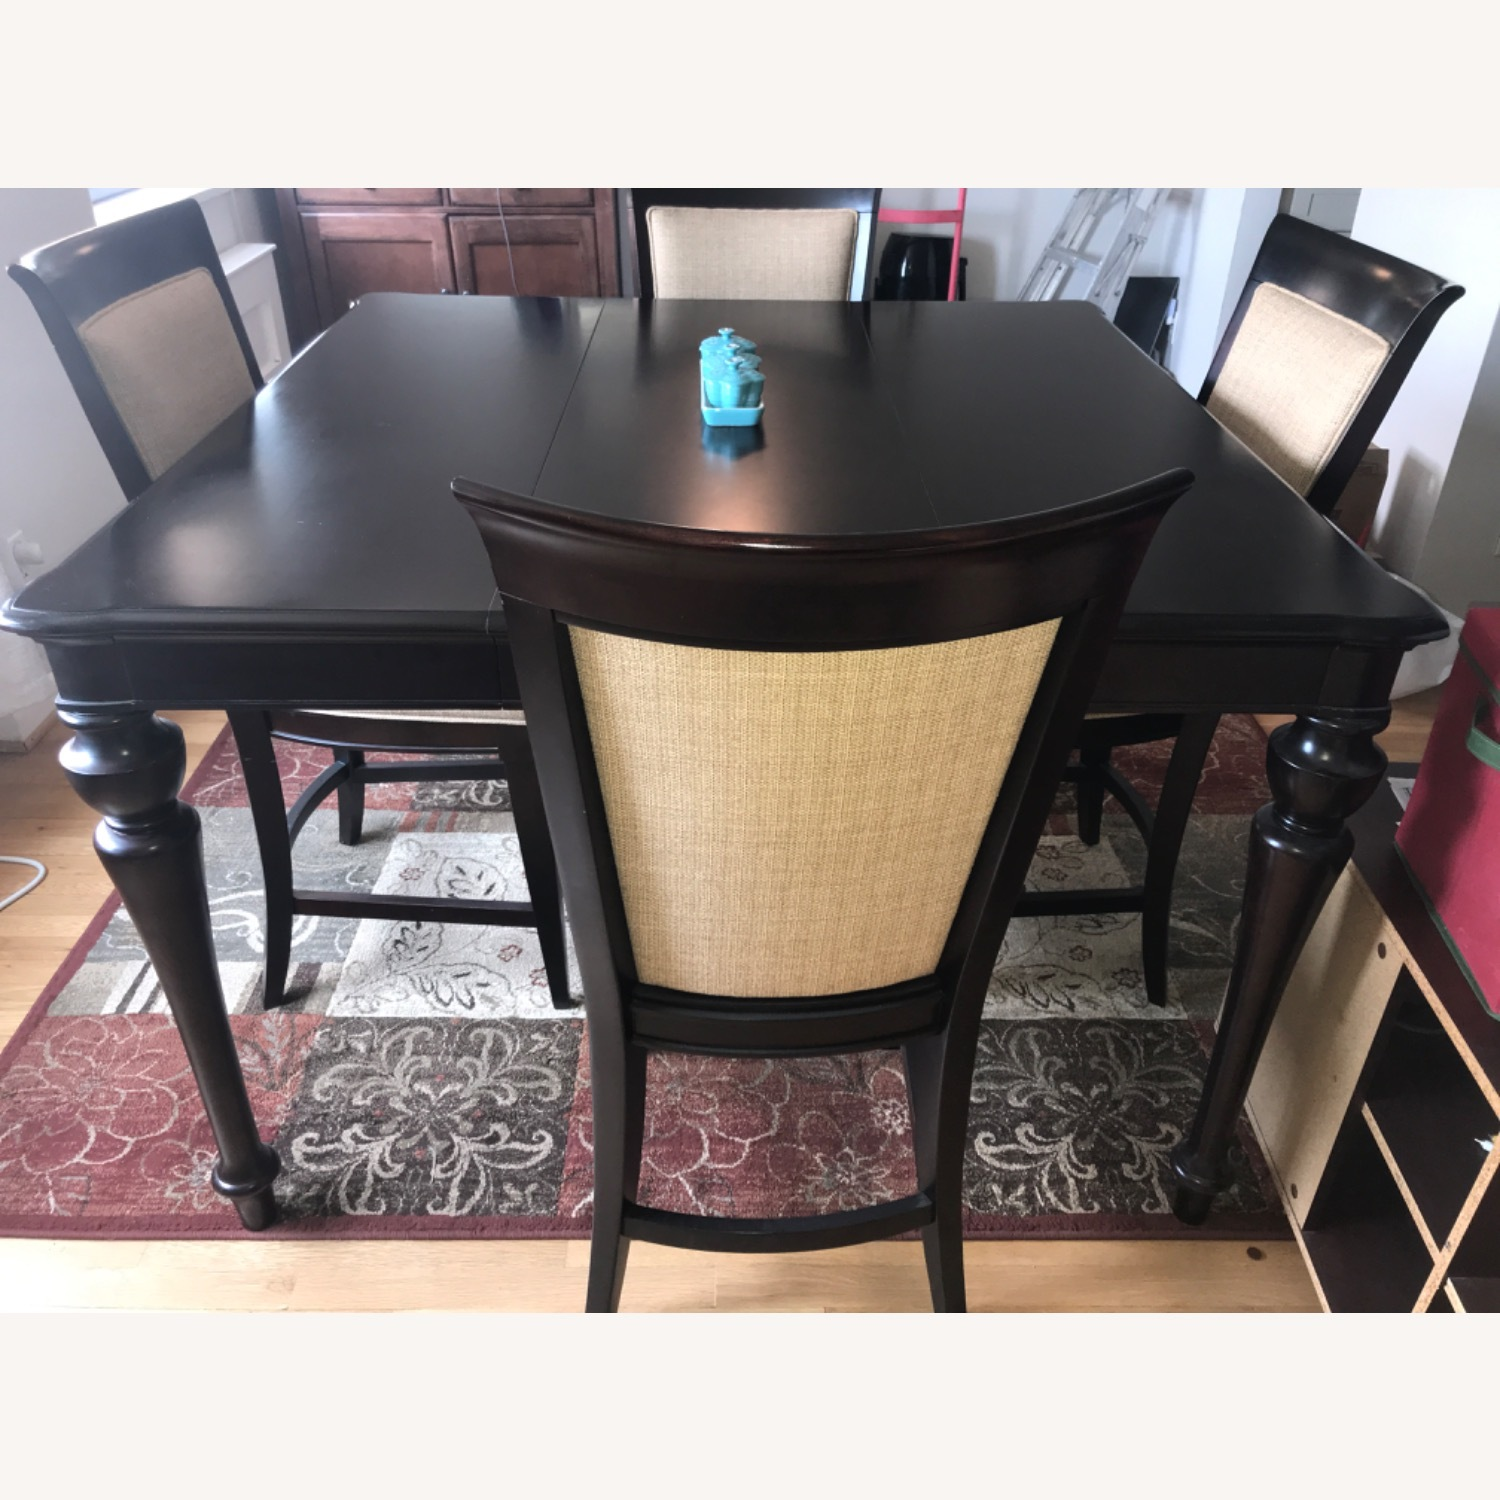 Havertys Copley Square Gathering Dining Table Set with Leaf - image-3